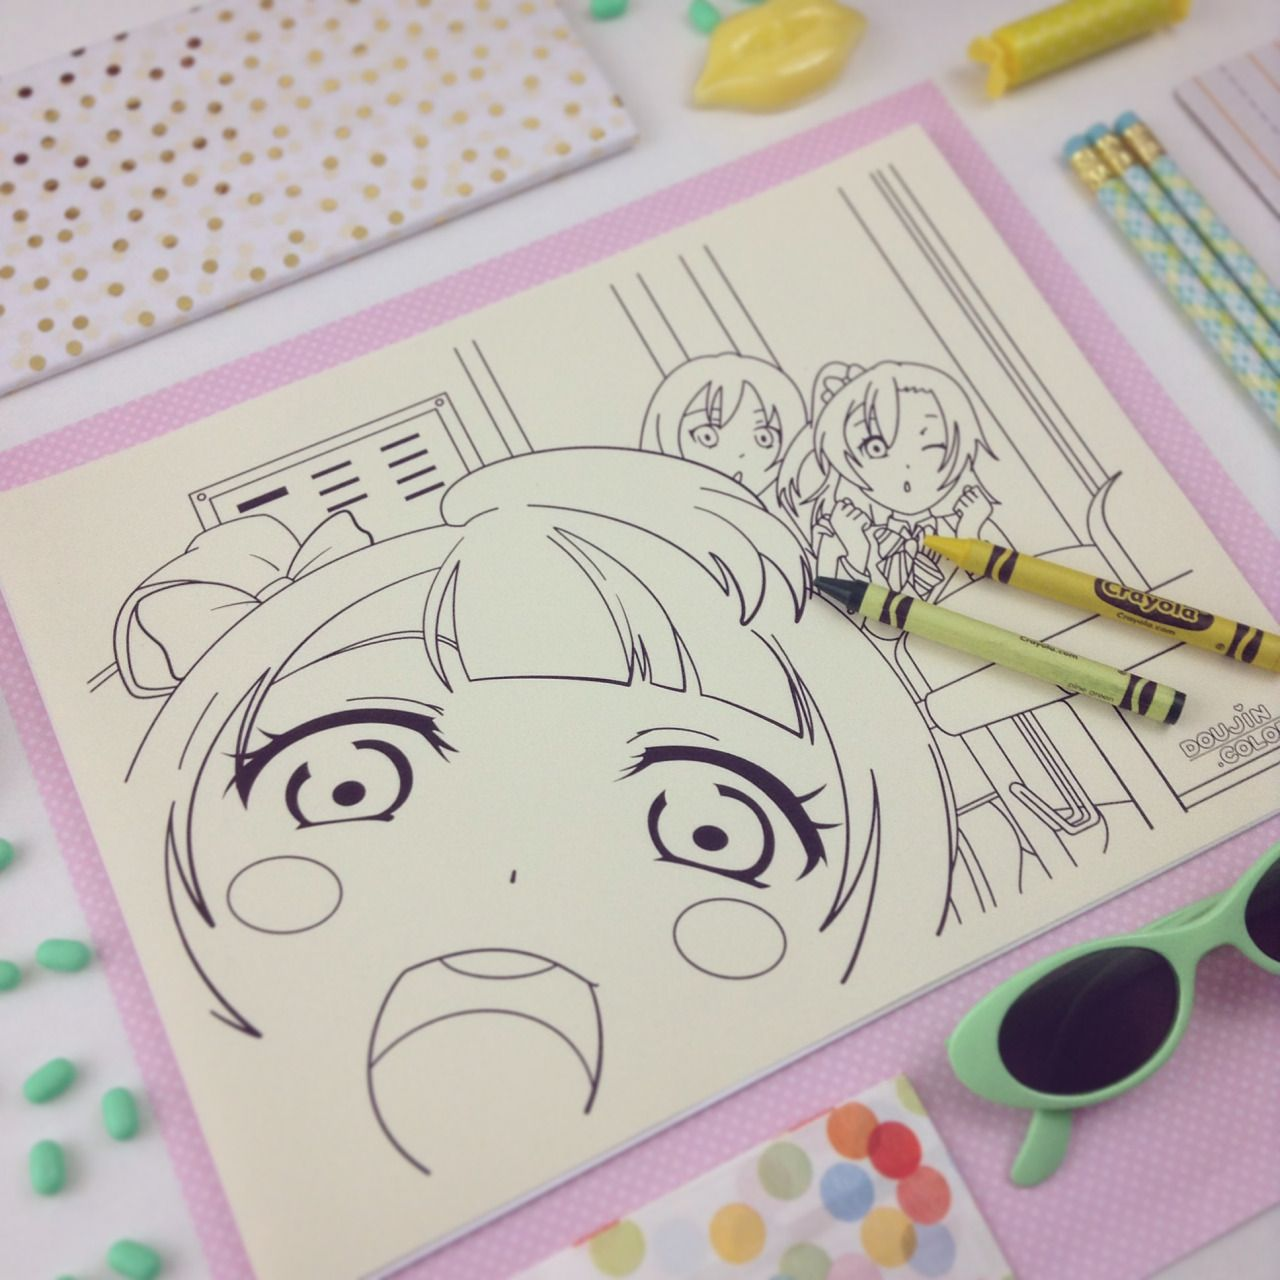 Doujincolor Free Coloring Pages Anime Love Anime